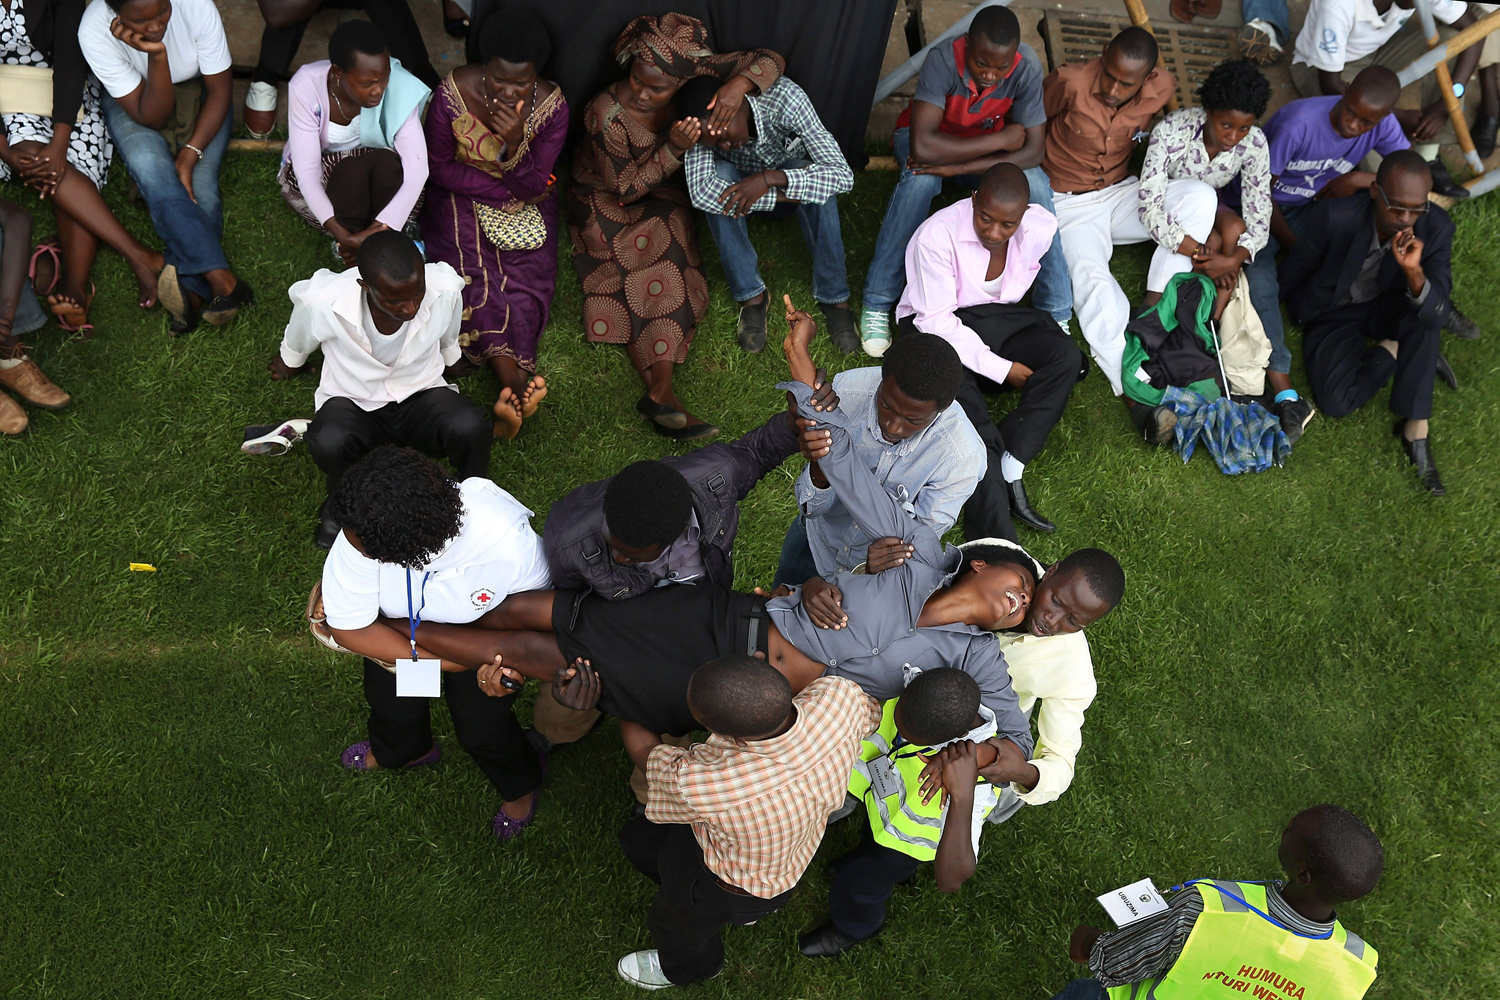 Apr. 7, 2014. Ushers carry a screaming and emotionally distraught woman out of Amahoro Stadium during the 20th anniversary commemoration of the 1994 genocide in Kigali, Rwanda.